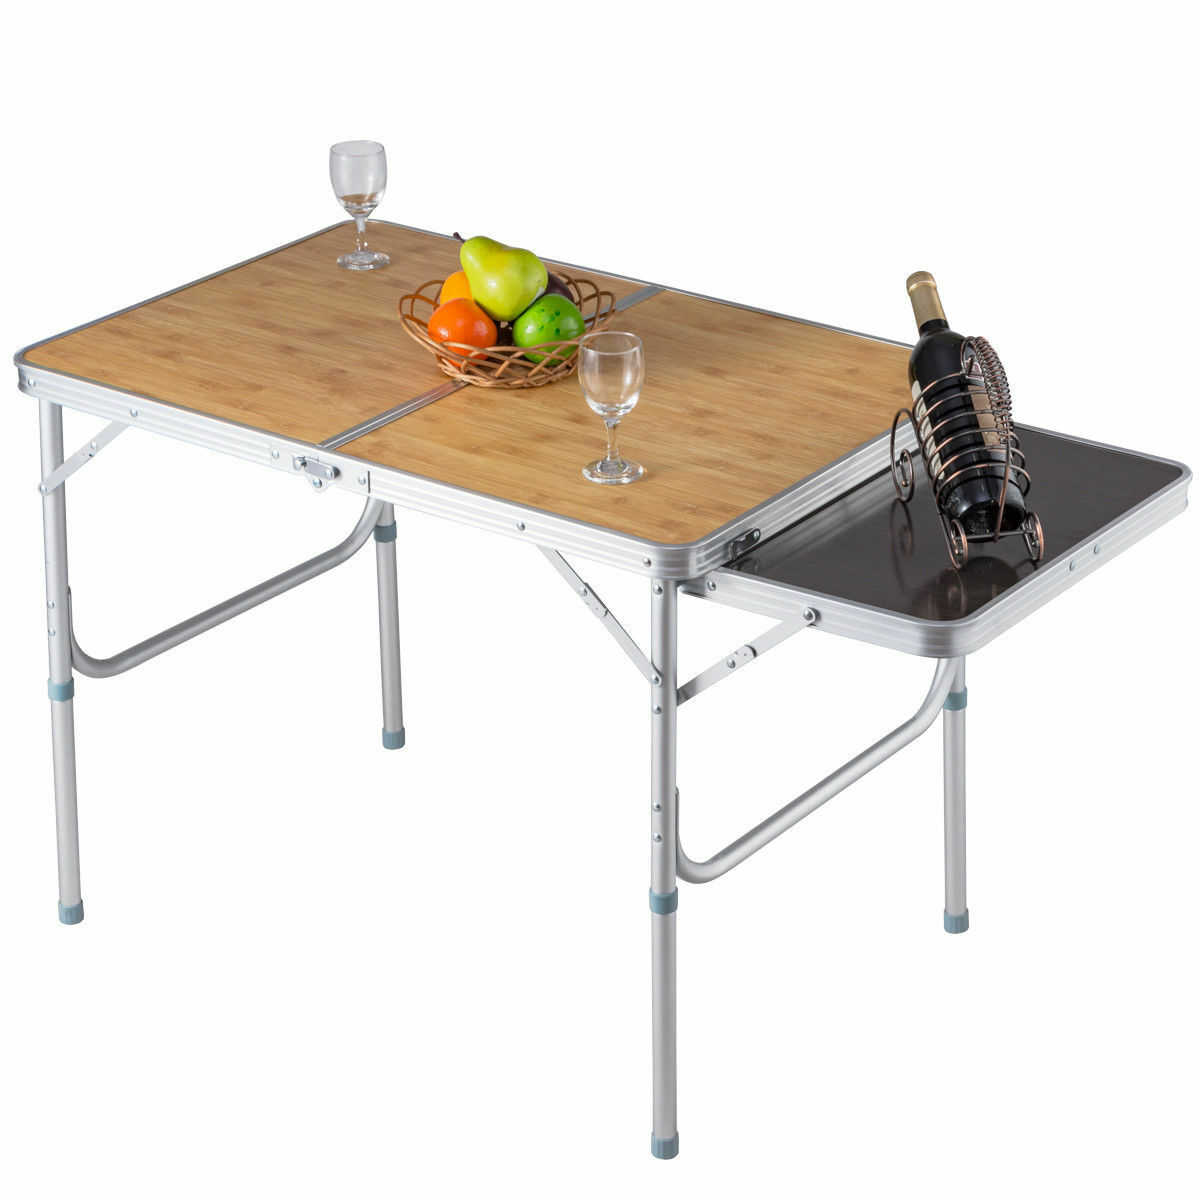 Portable Folding Picnic Camping Trade Show Table Indoor Outdoor Patio Furniture